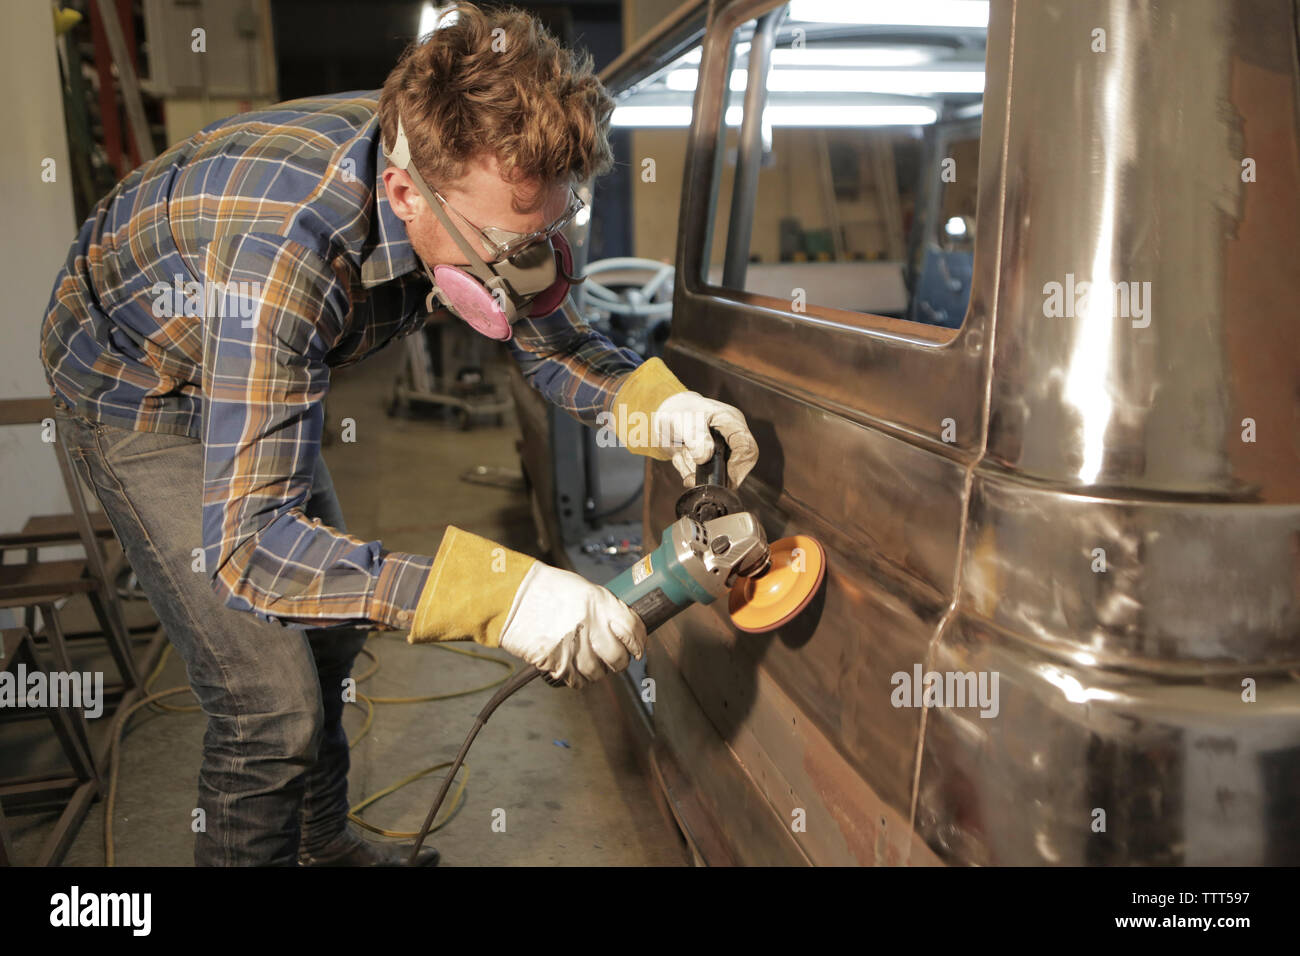 Engineer polishing van with angle grinder in factory - Stock Image